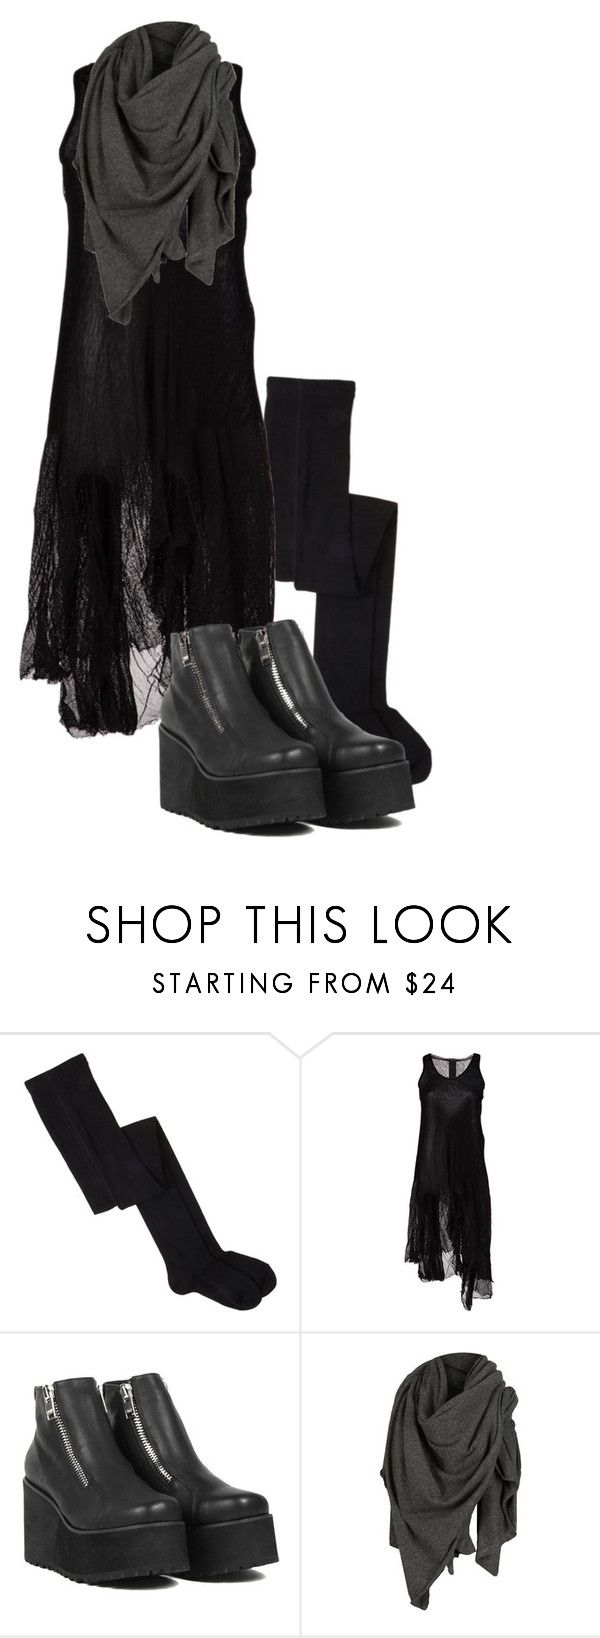 """Untitled #326"" by hades-persephone ❤ liked on Polyvore featuring forme d'expression and AllSaints"